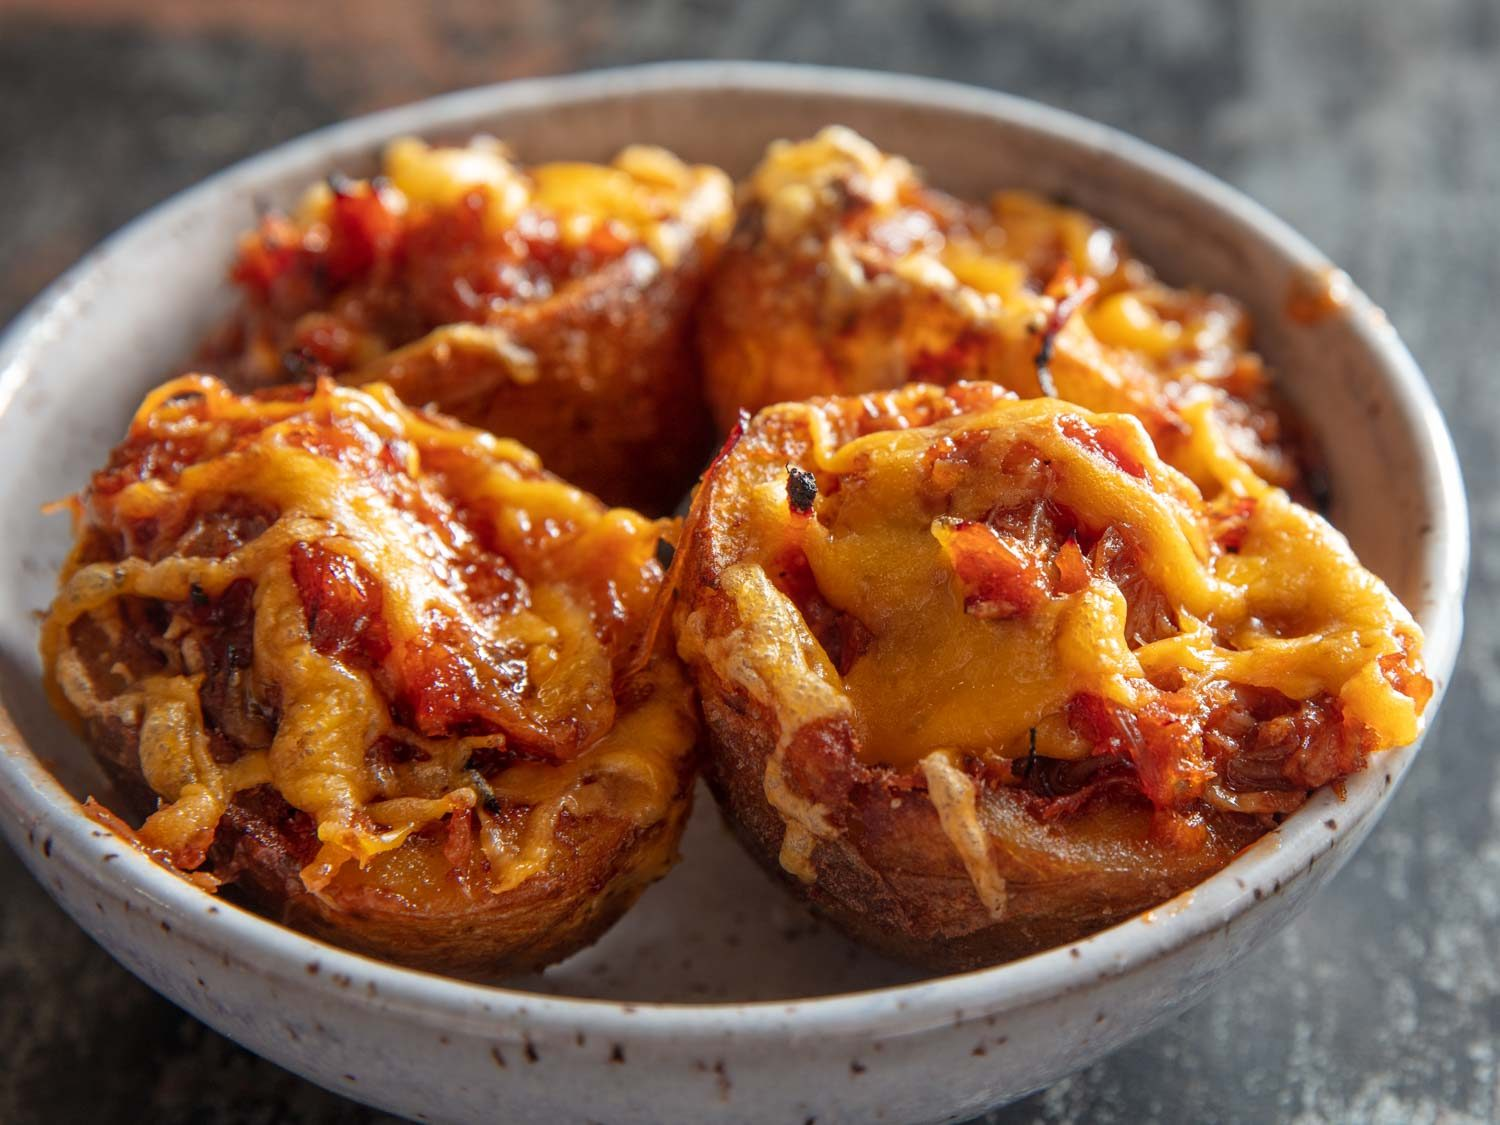 Deep-Fried Potato Skins With Pulled Pork and Cheddar